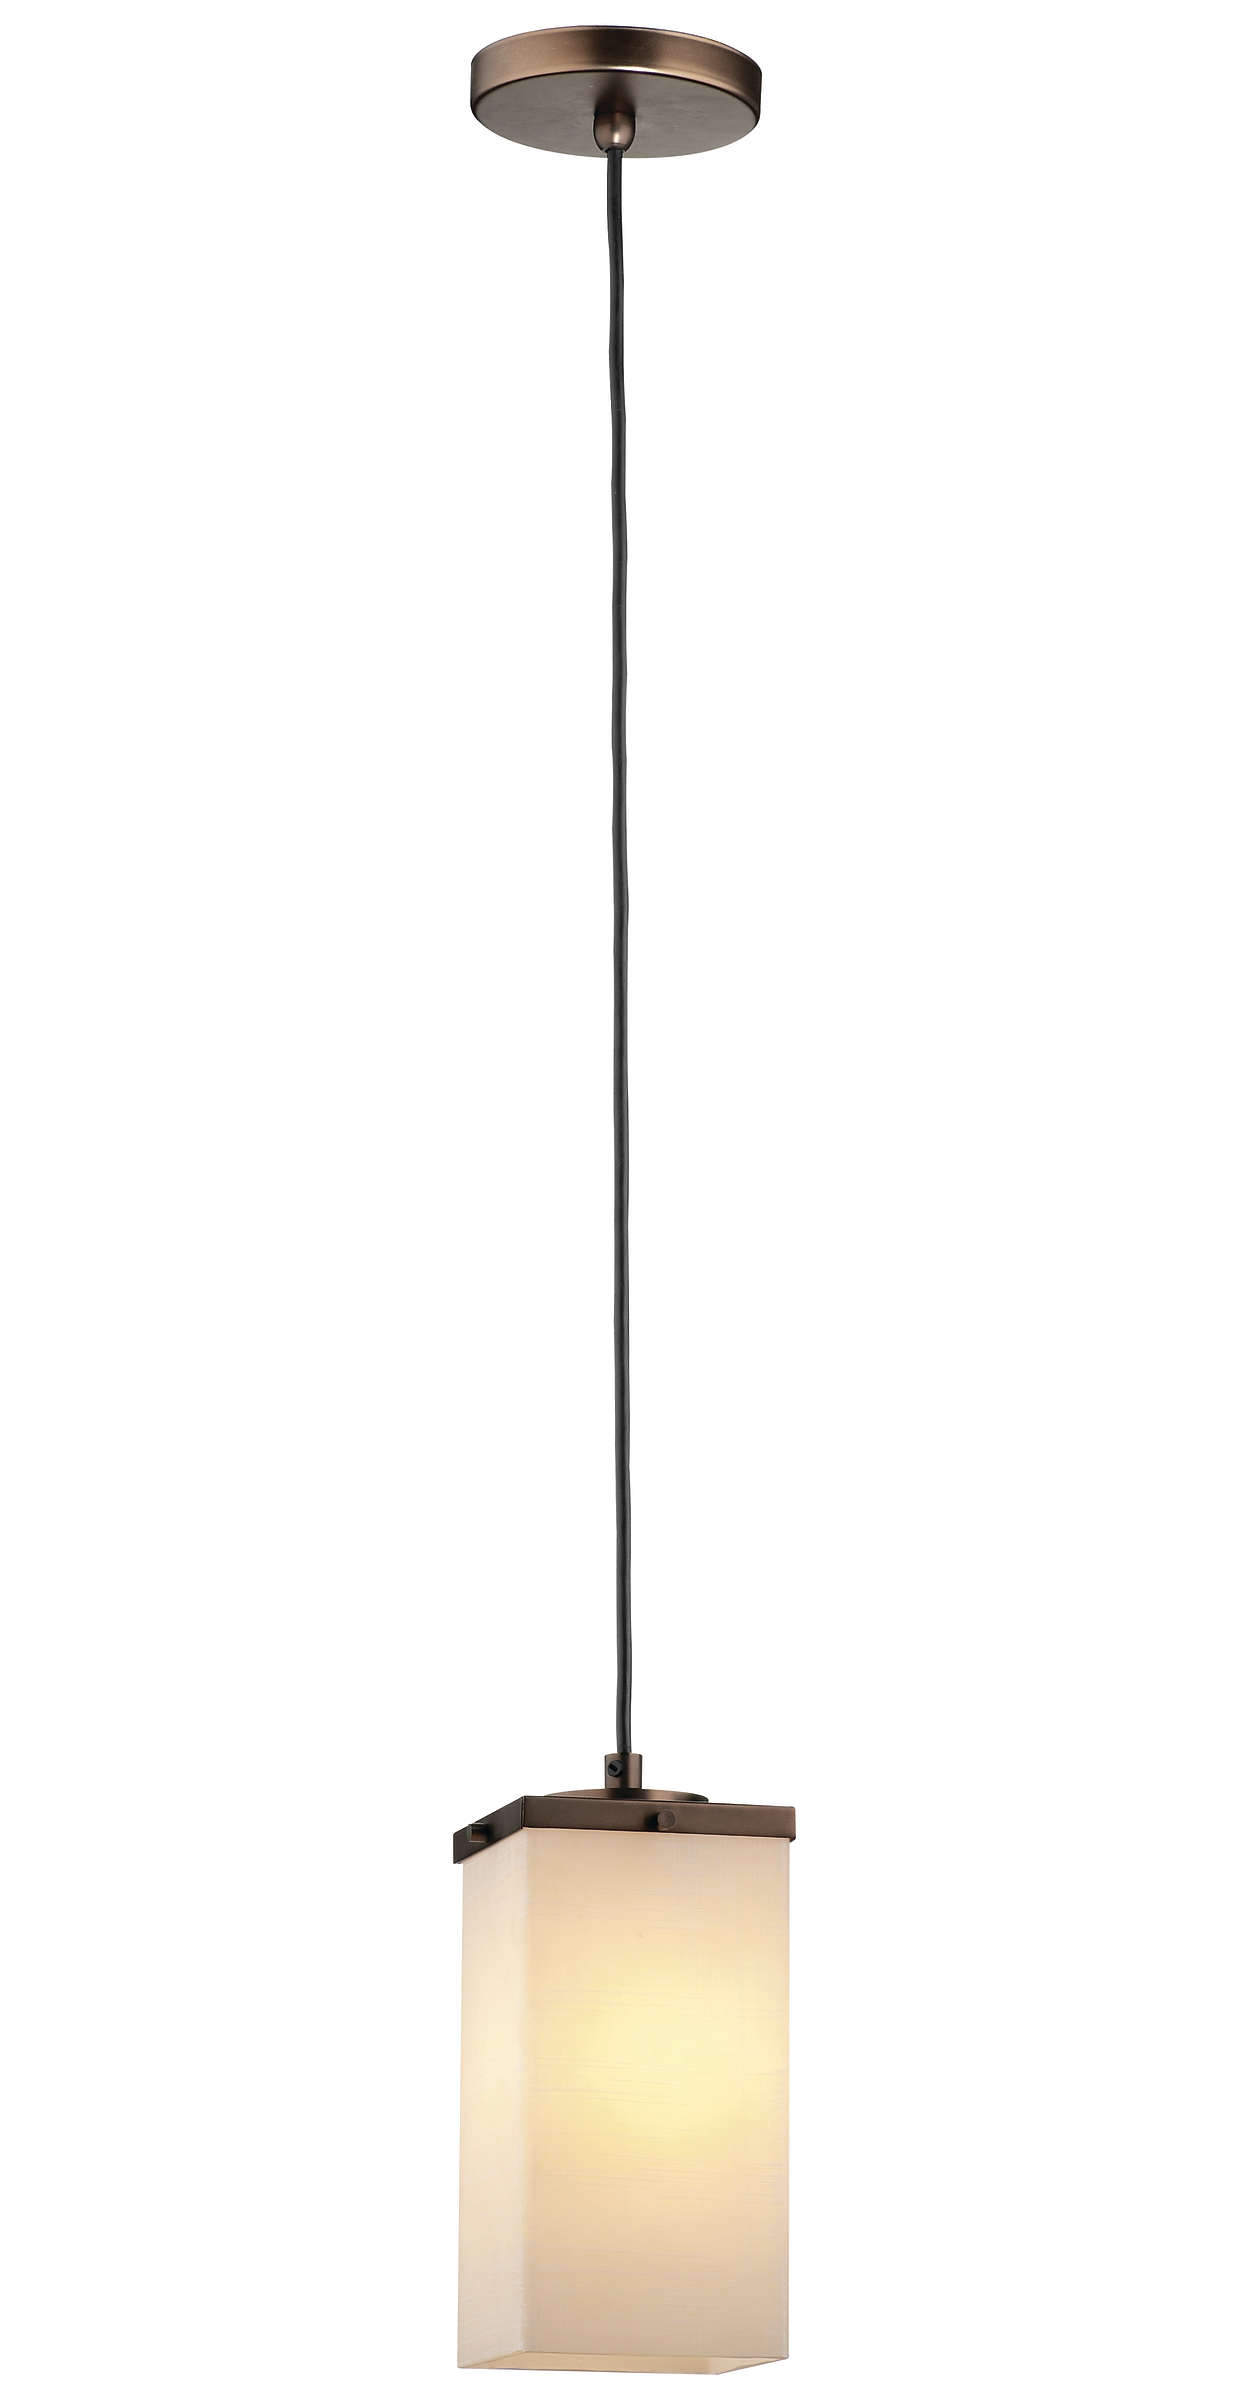 Casa 1-light Pendant in Merlot Bronze finish